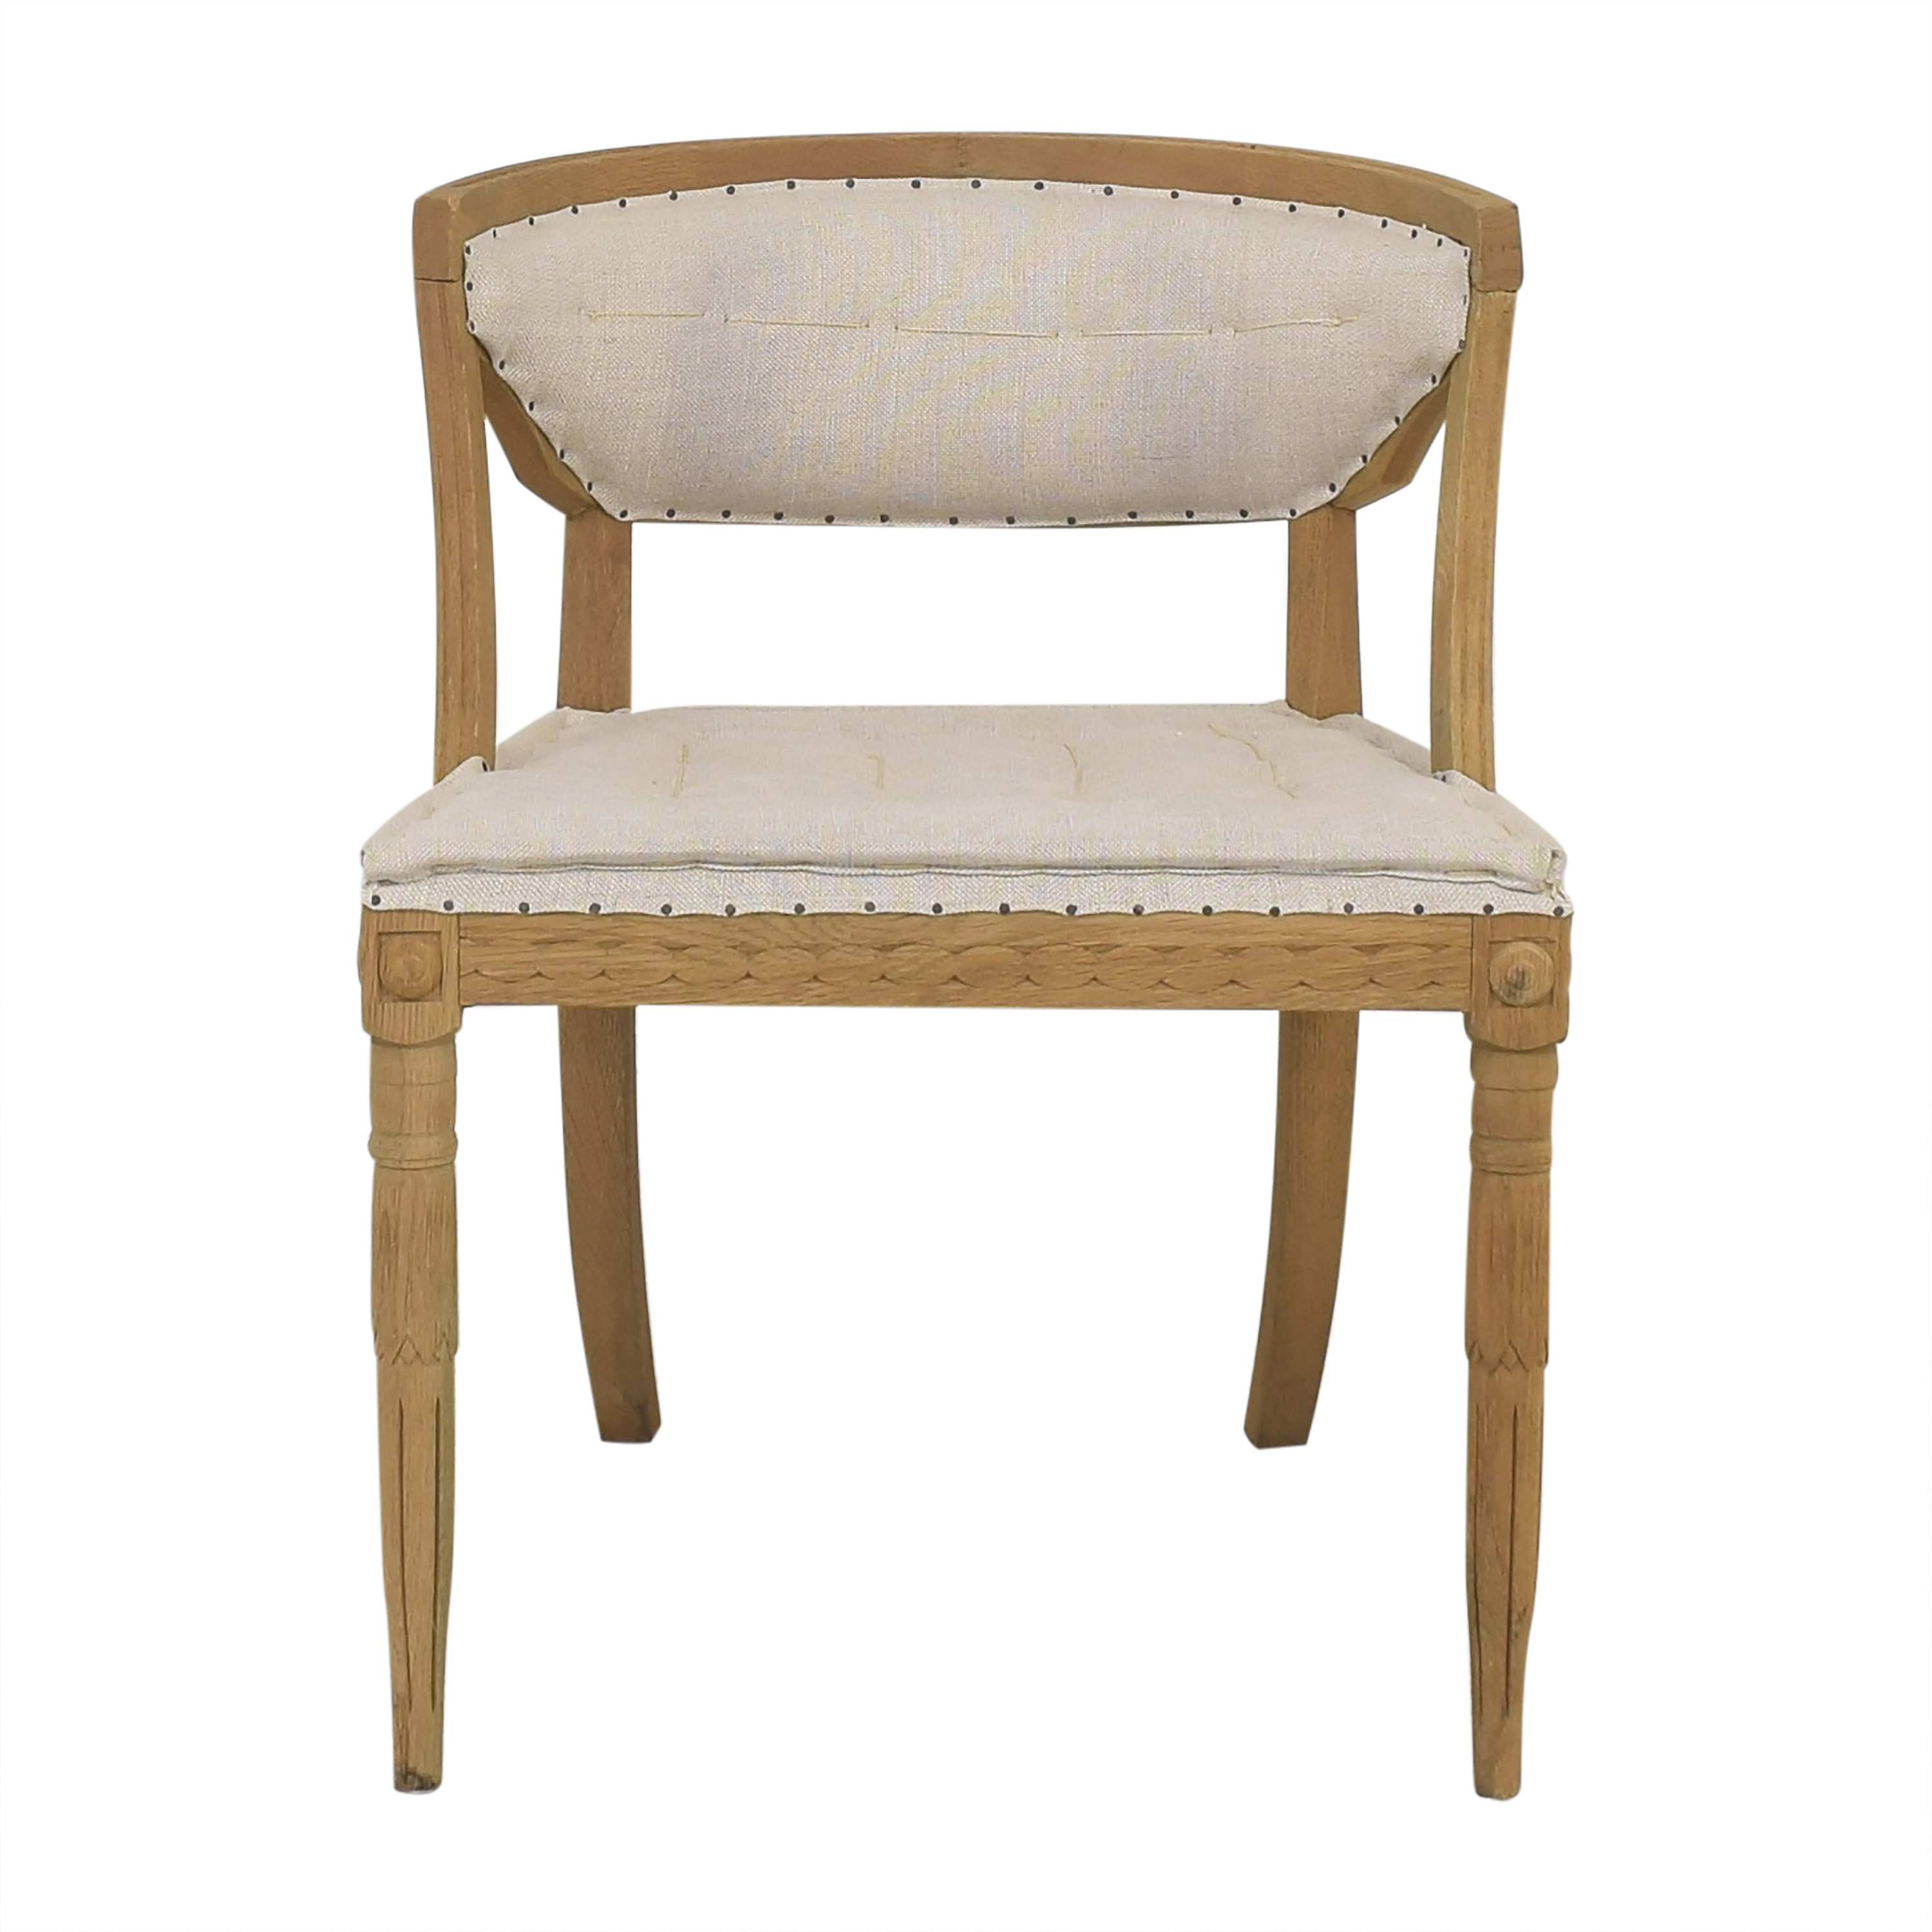 Restoration Hardware Restoration Hardware Upholstered Dining Chair price